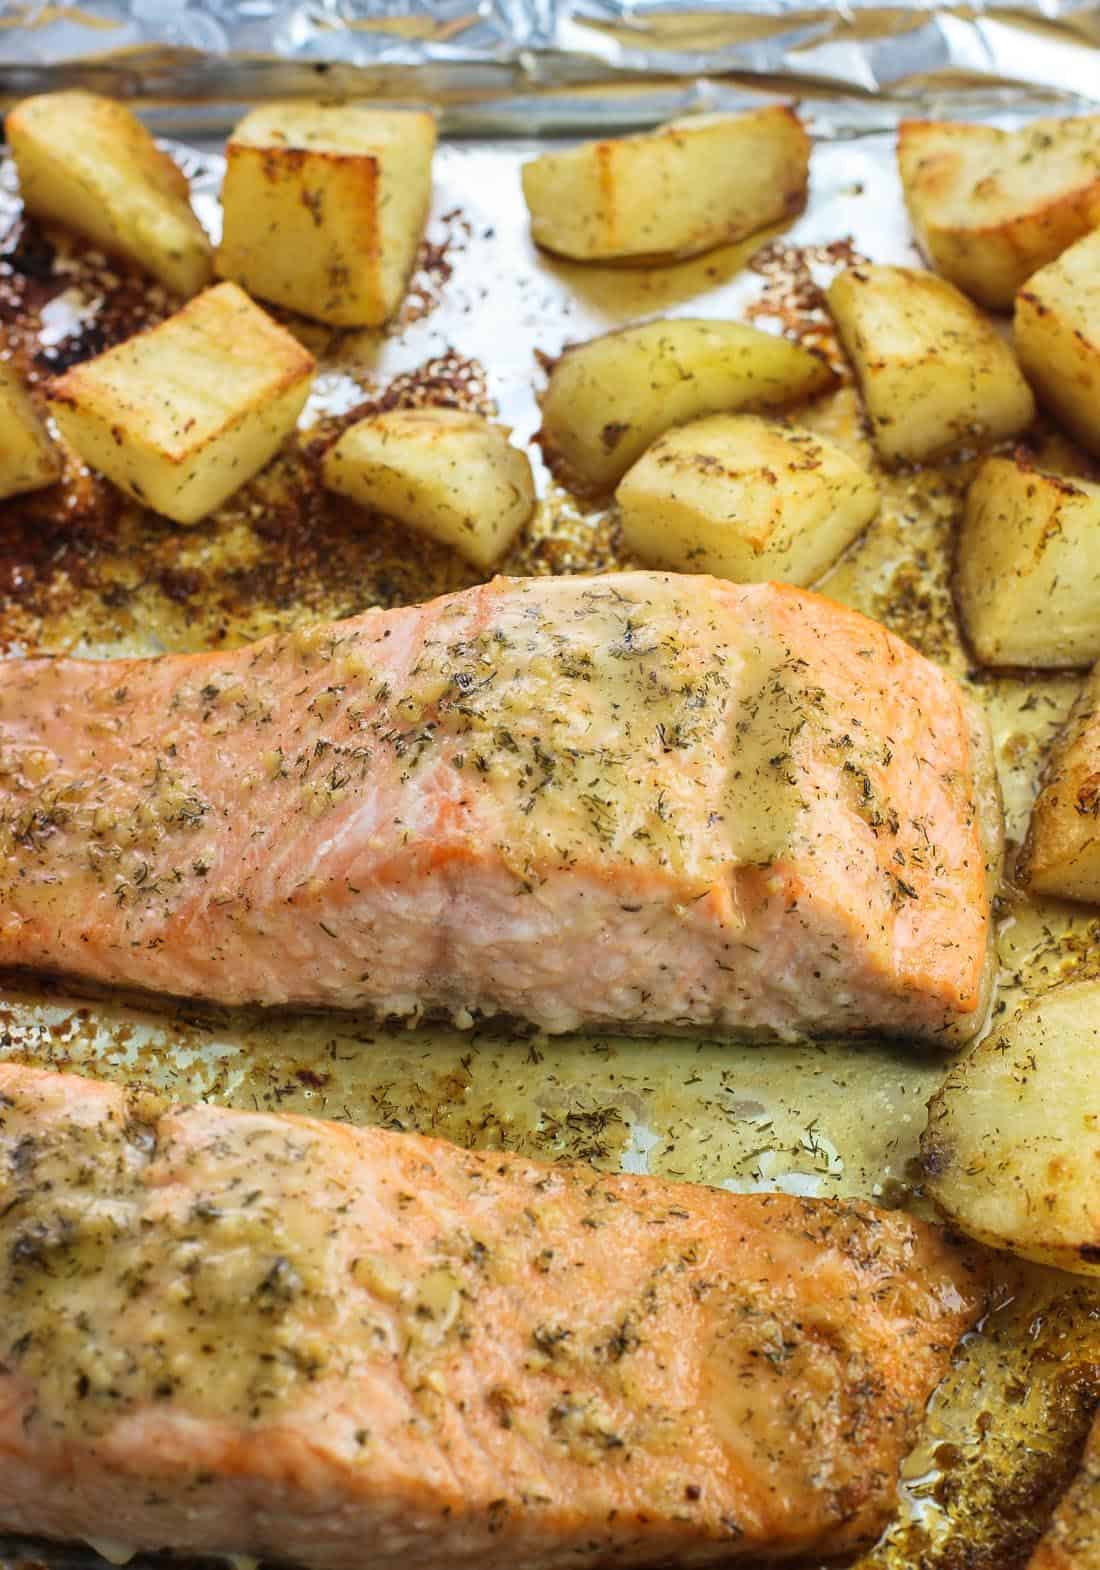 Two cooked salmon fillets coated in horseradish sauce on a foil-lined baking sheet surrounded by potato wedges